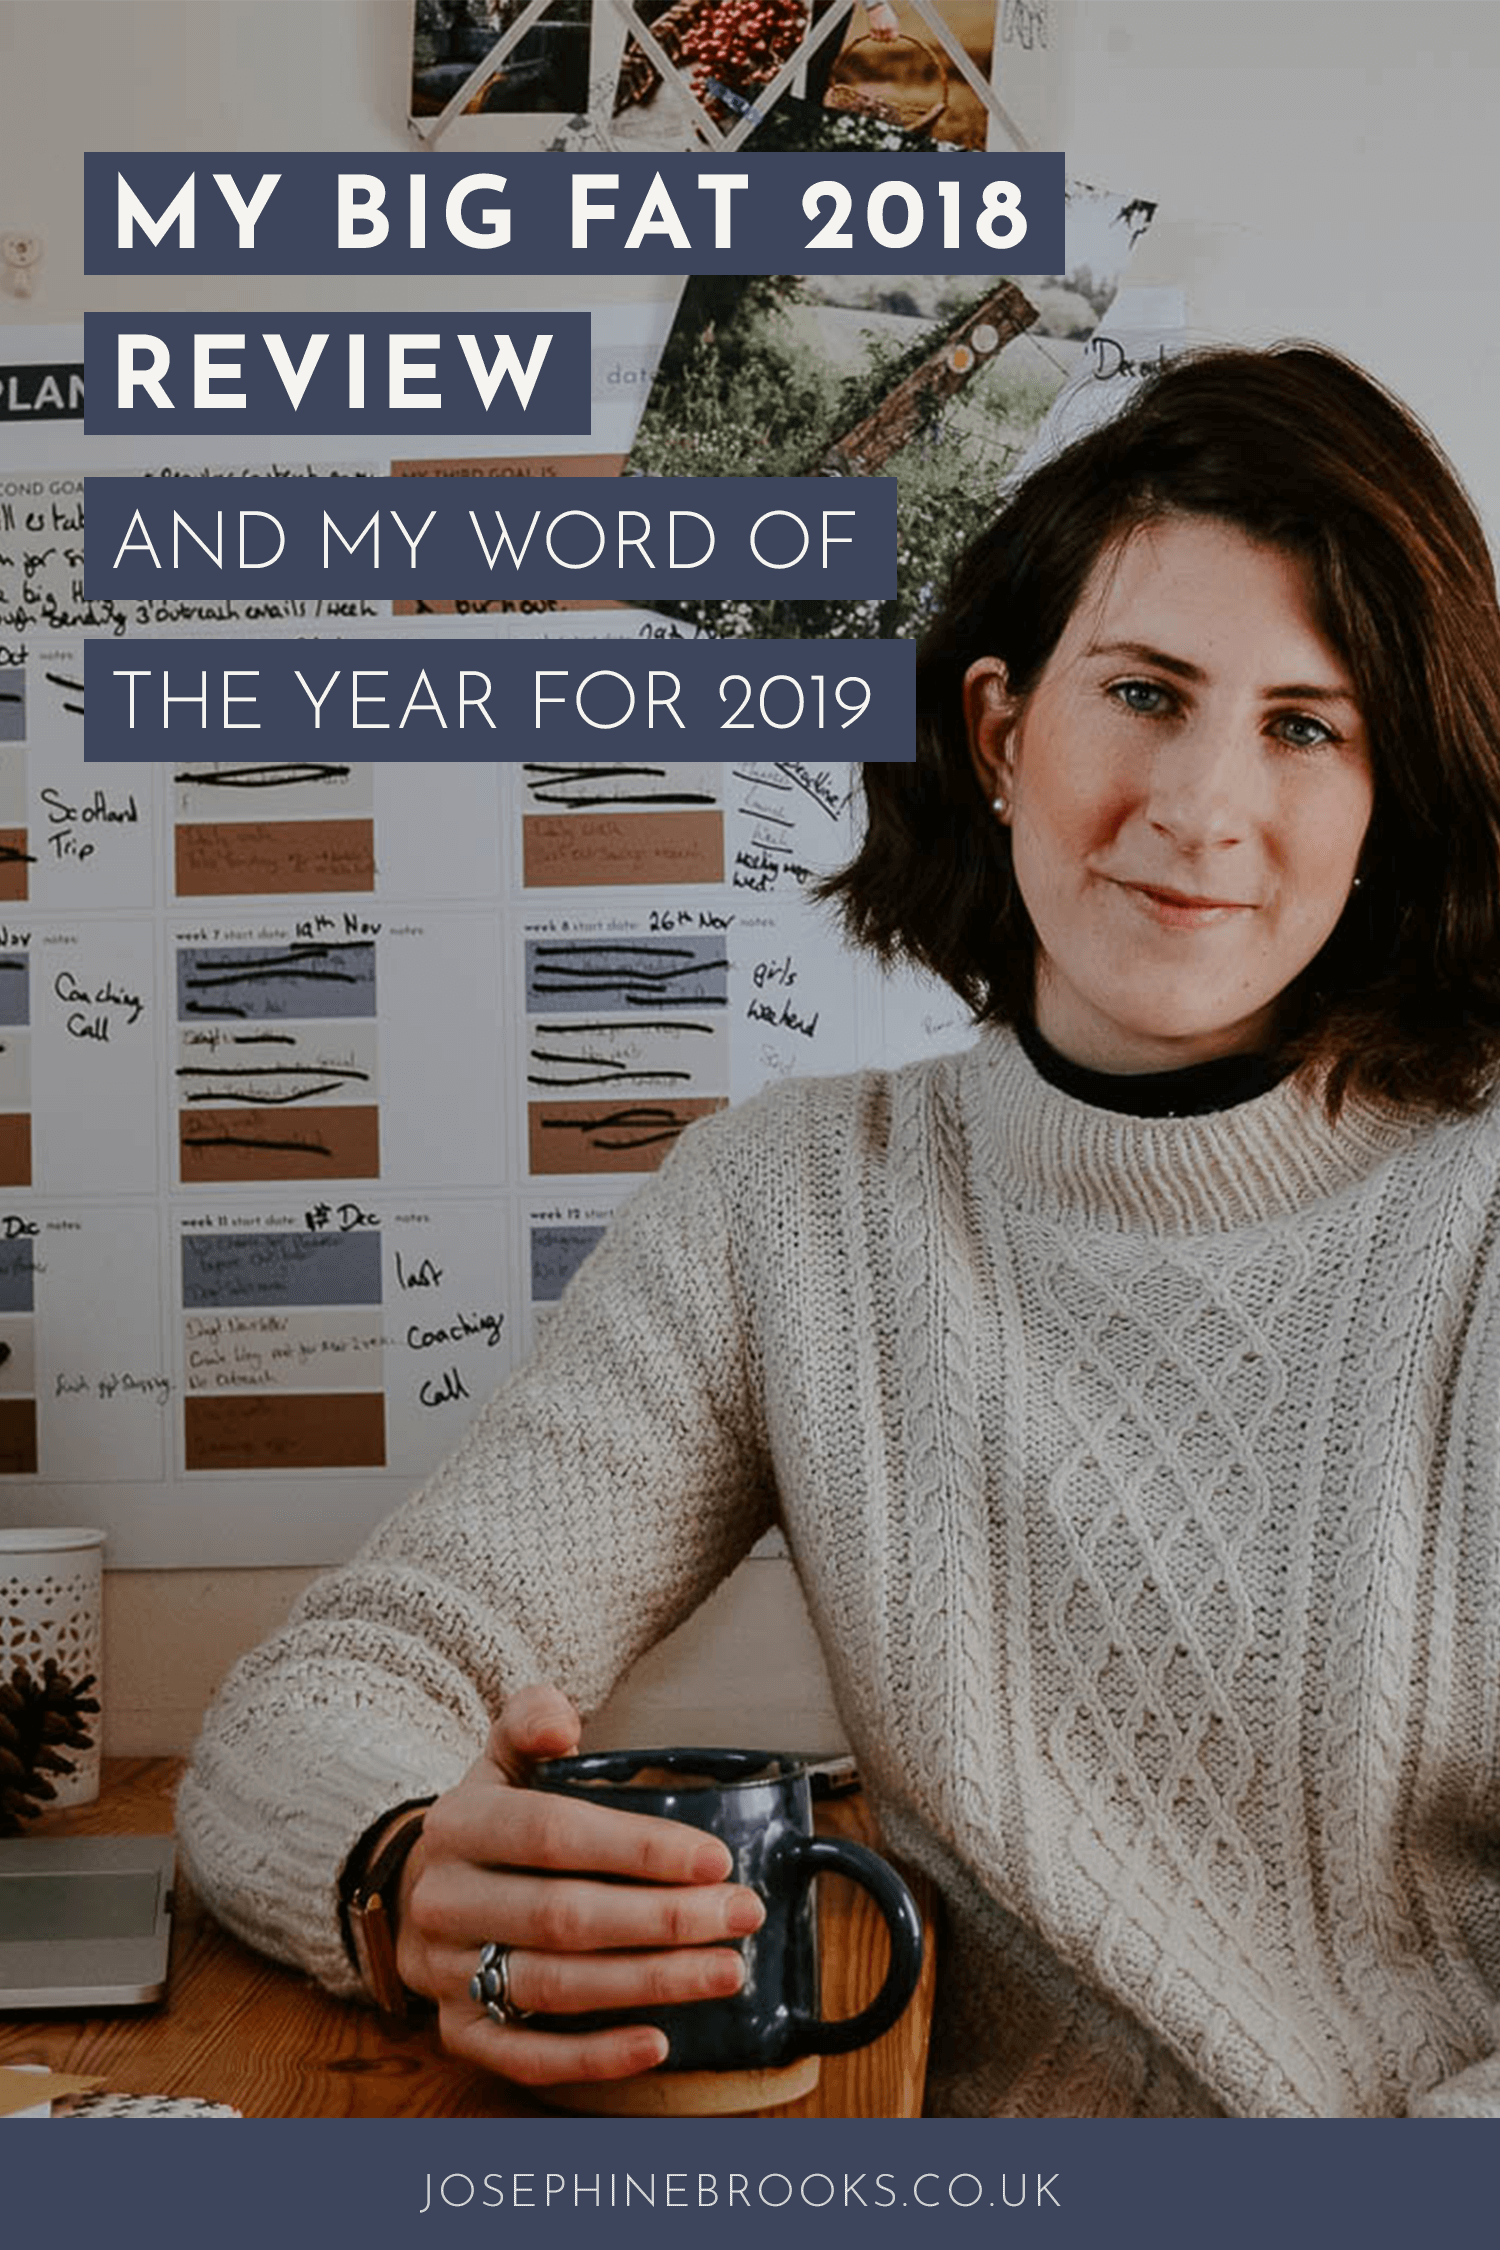 My big fat 2018 side-hustle review and my word for 2019